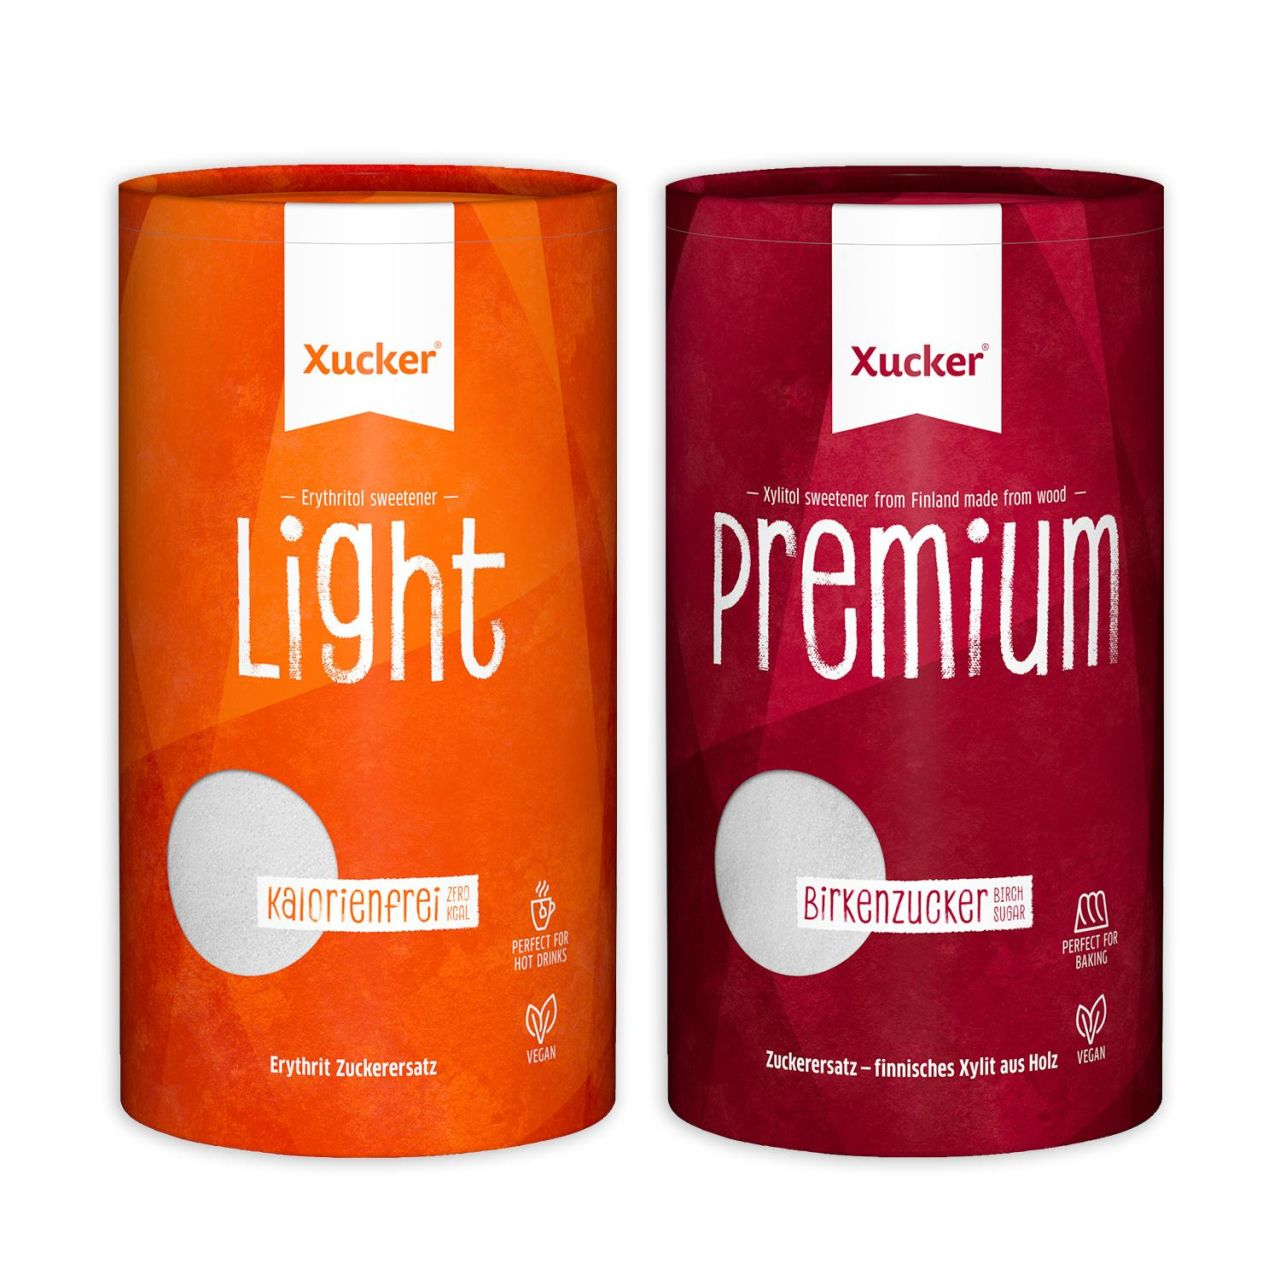 Xucker 2er-Set Dosen Premium (Xylit) & Light (Erythrit) von Xucker